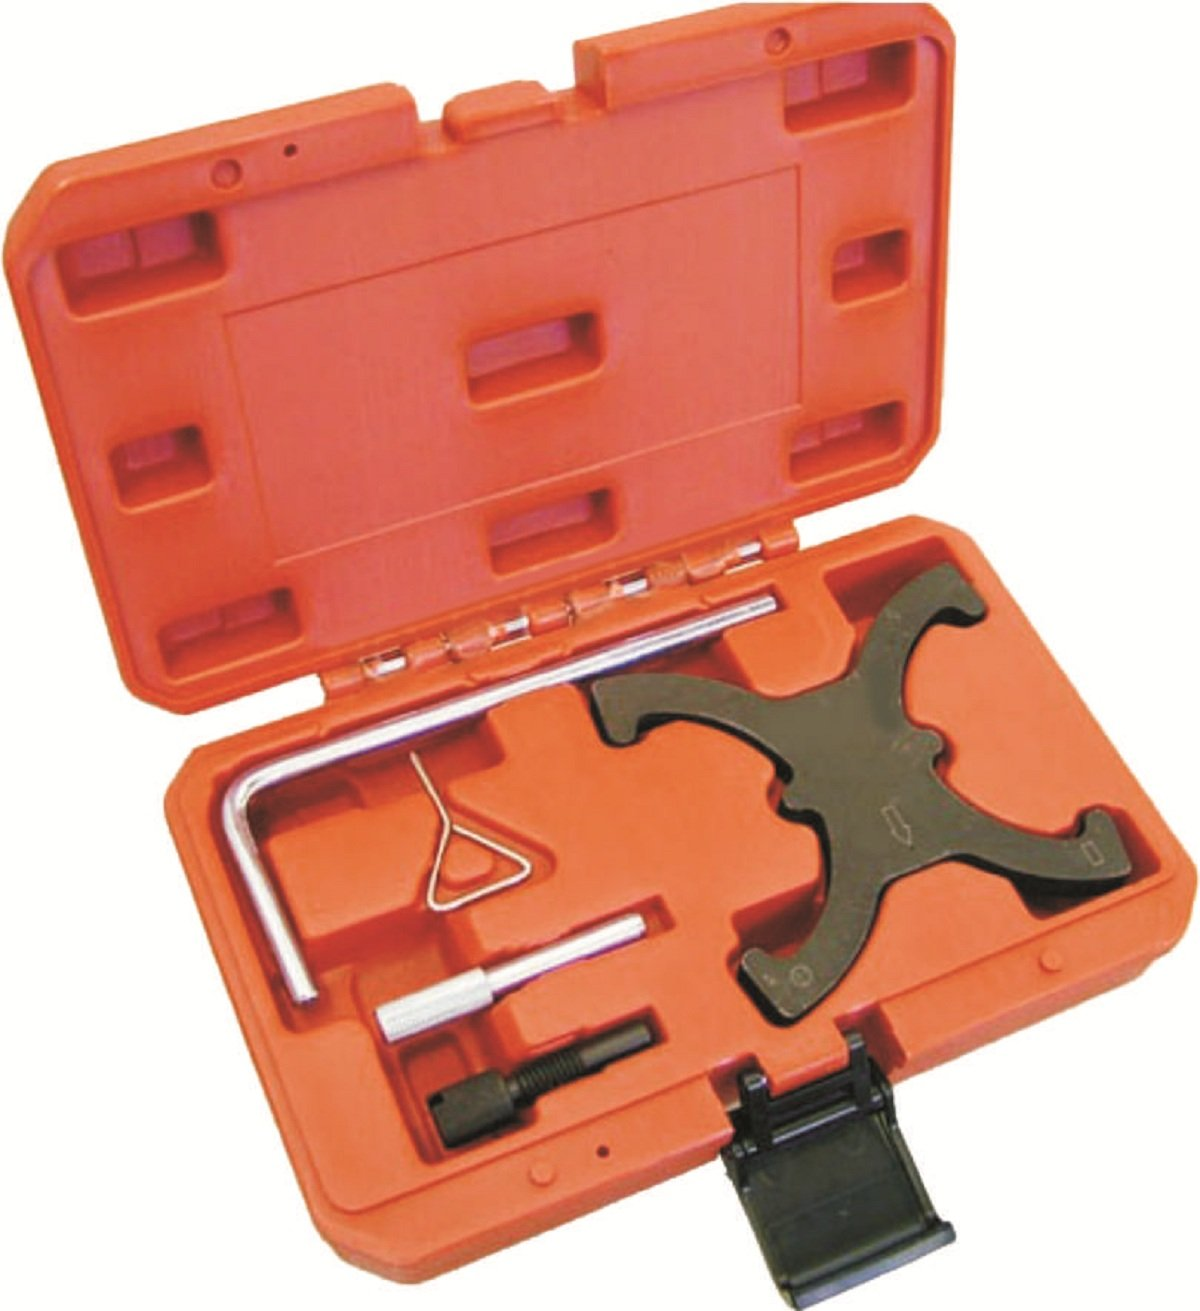 WINTOOLS 5 Pcs Petrol Engine Setting/Locking Kit-For Ford 1.6 VCT-Ti-Belt Drive by WINTOOLS (Image #1)